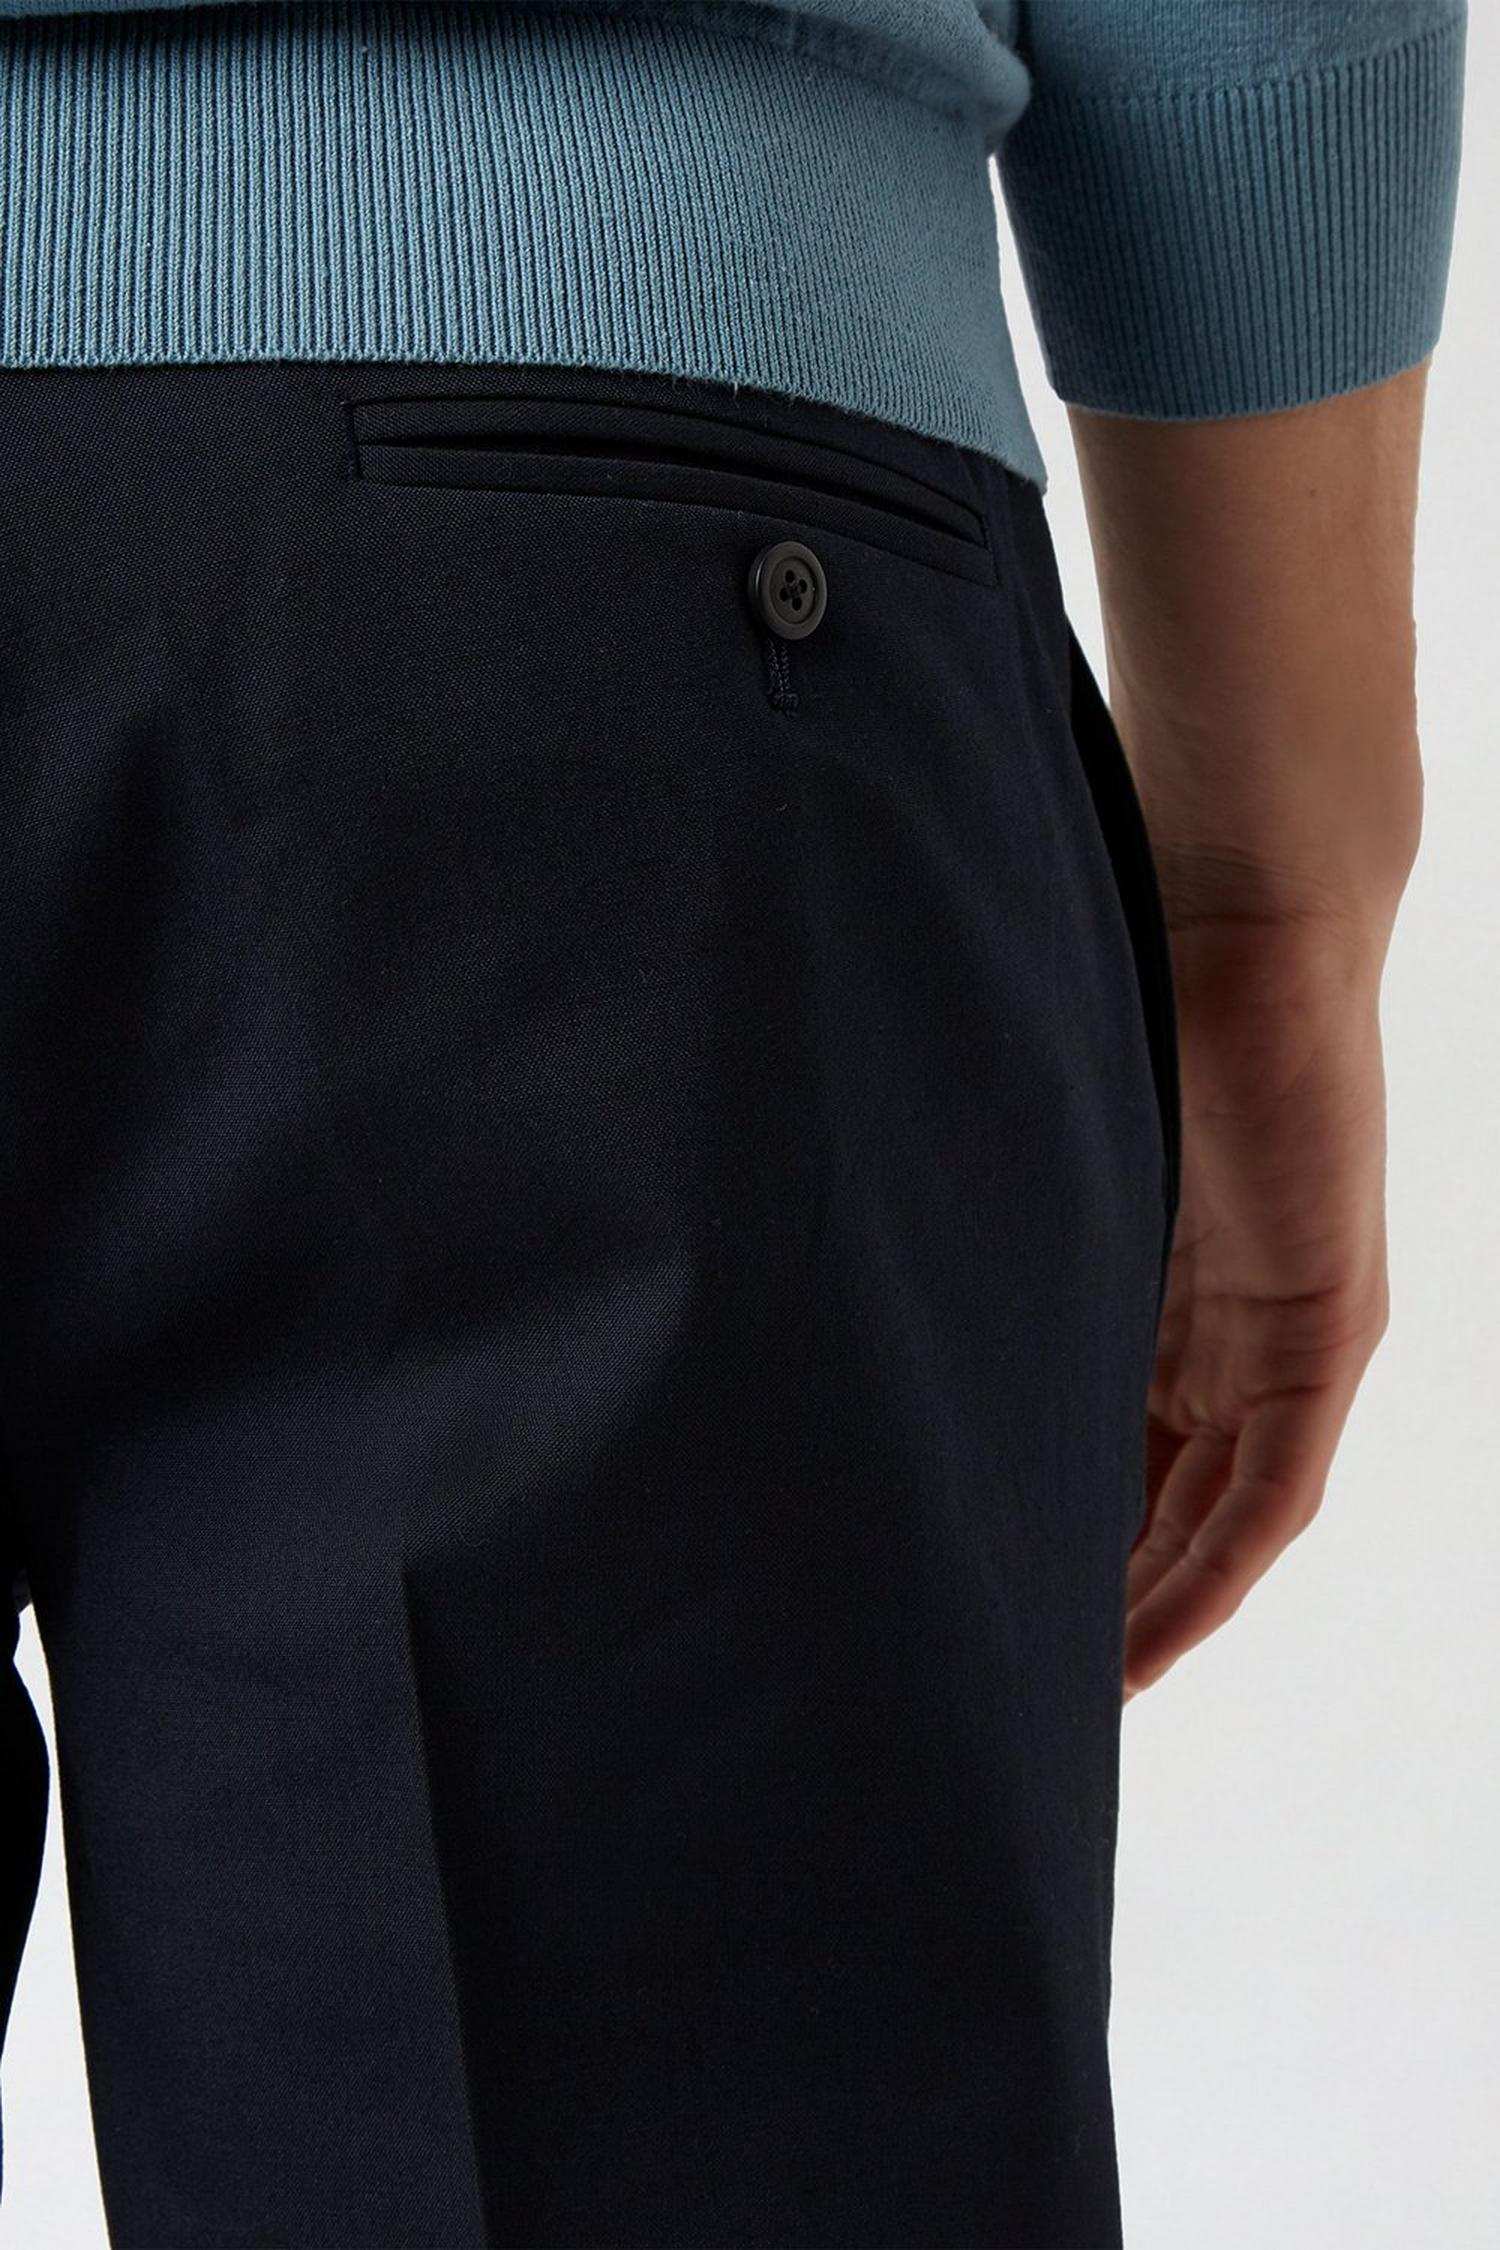 148 Navy Essential Skinny Fit Suit Trousers image number 4